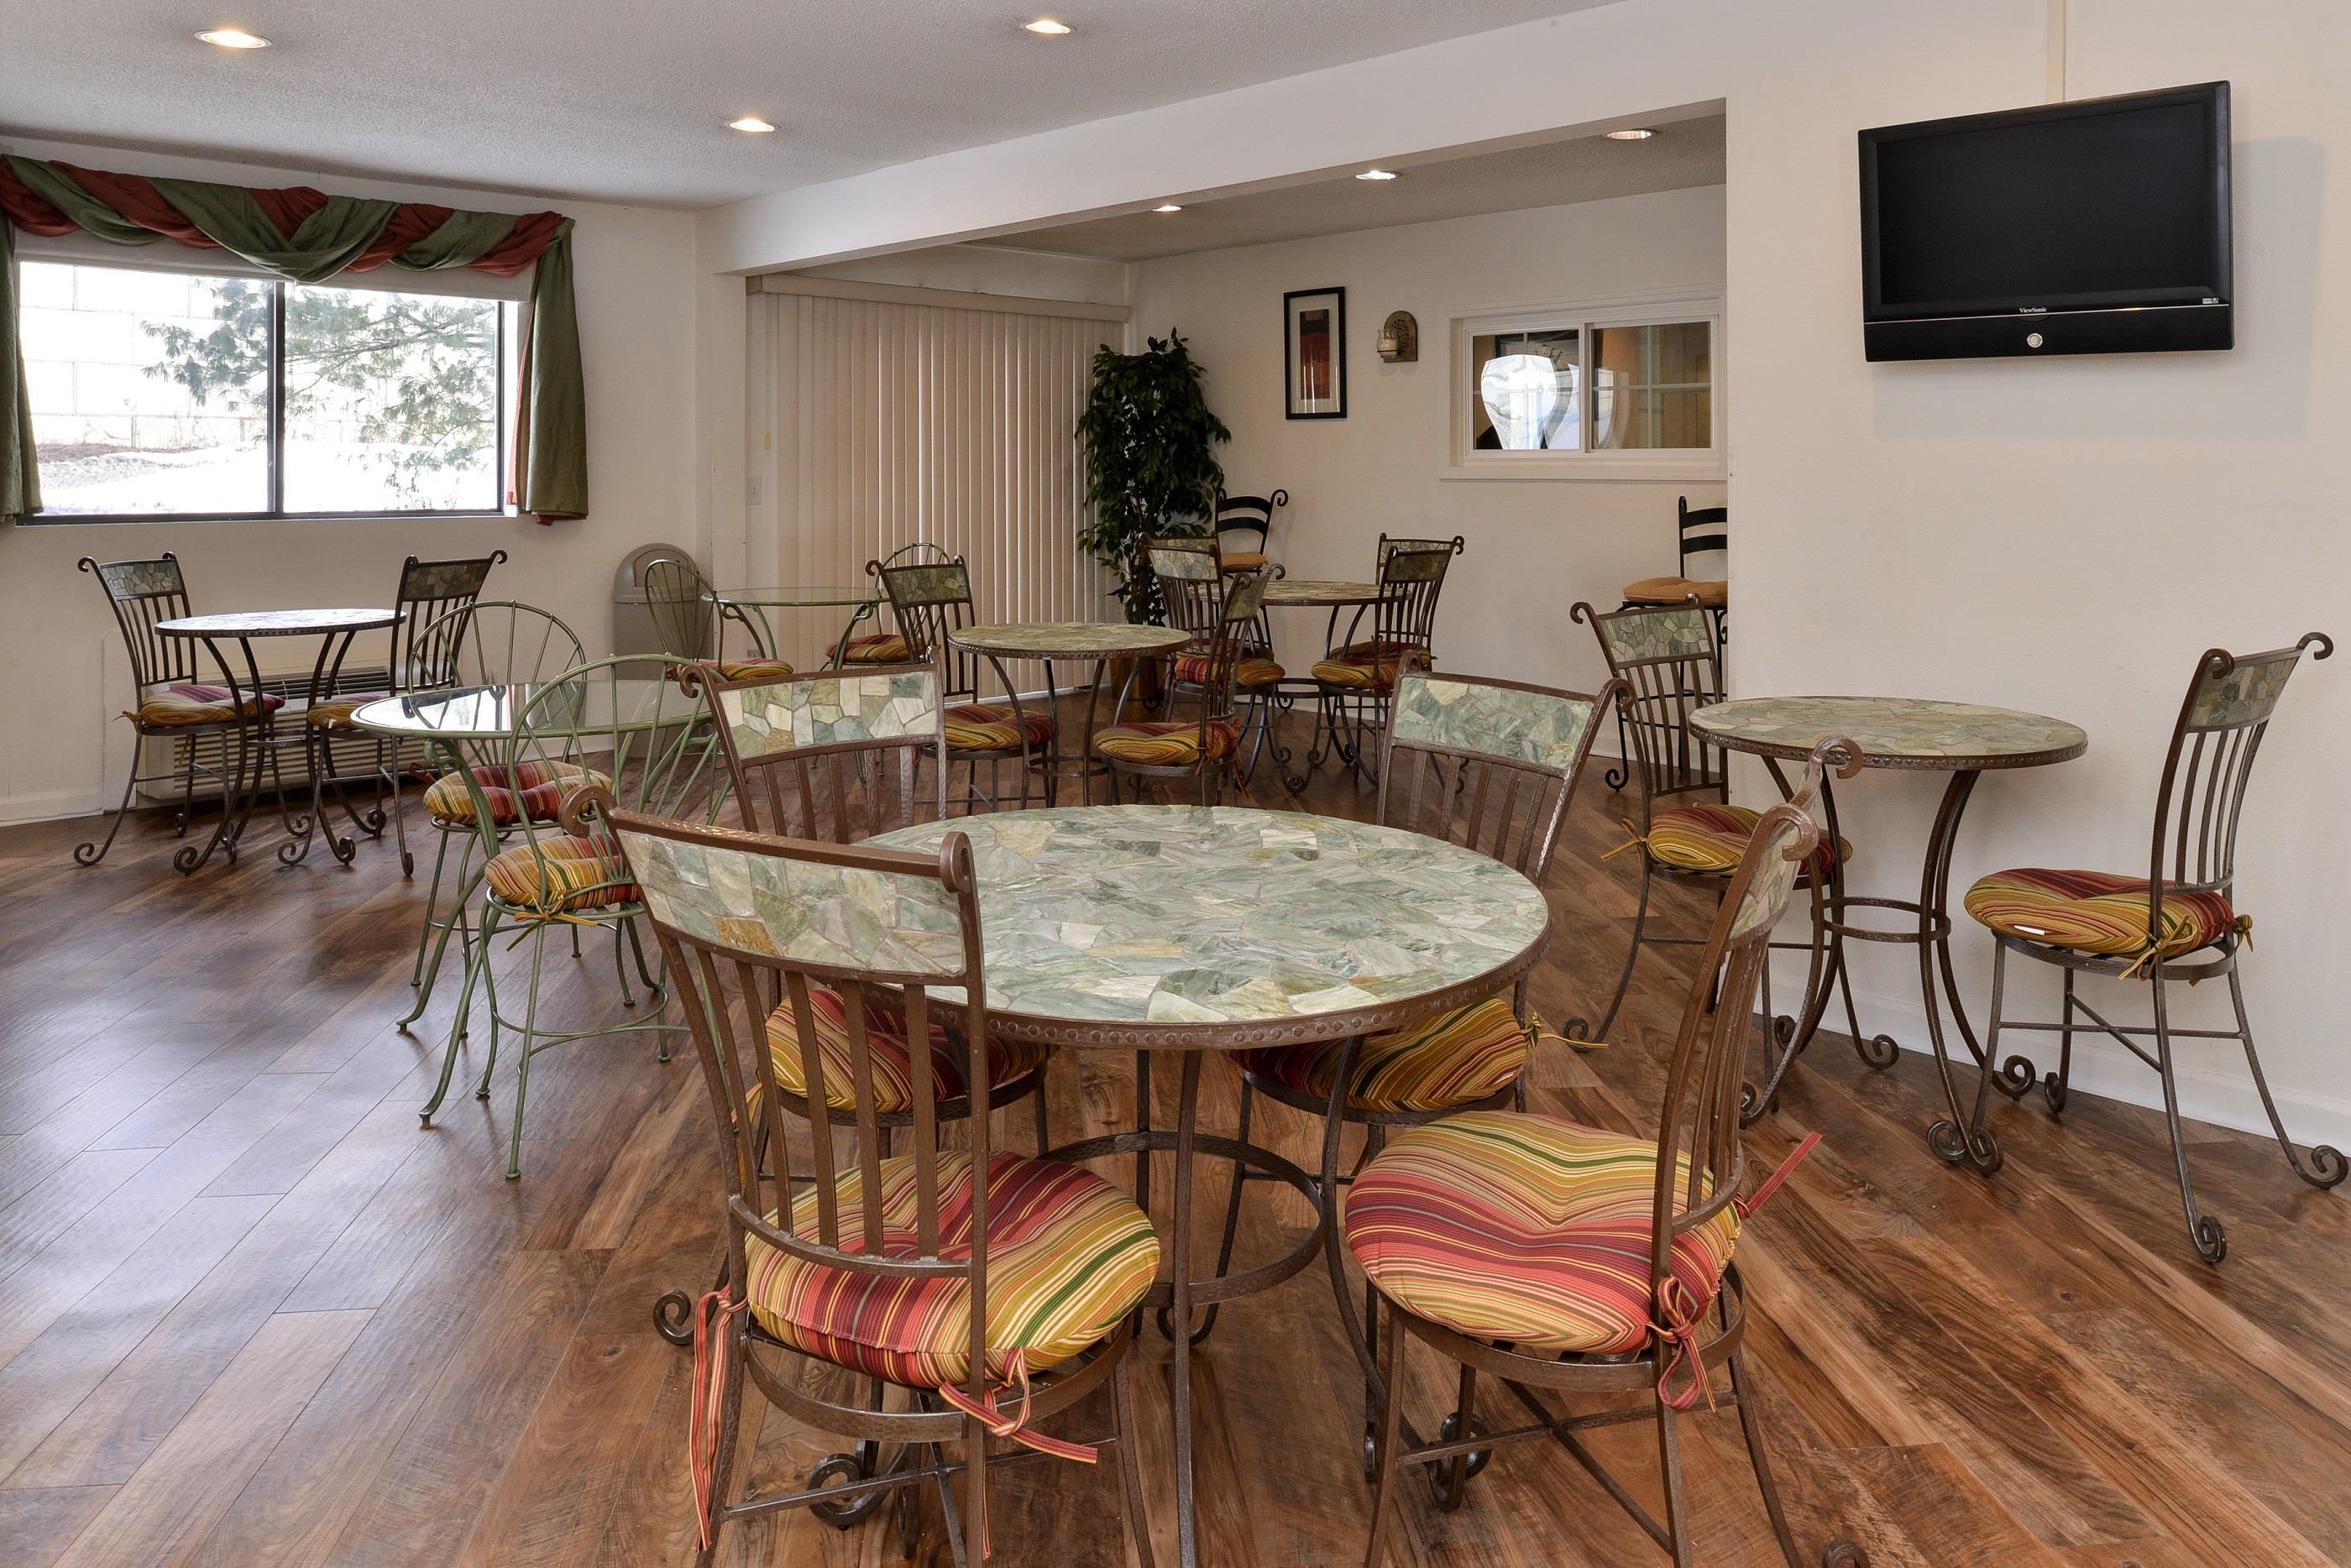 Americas Best Value Inn - New Paltz image 26